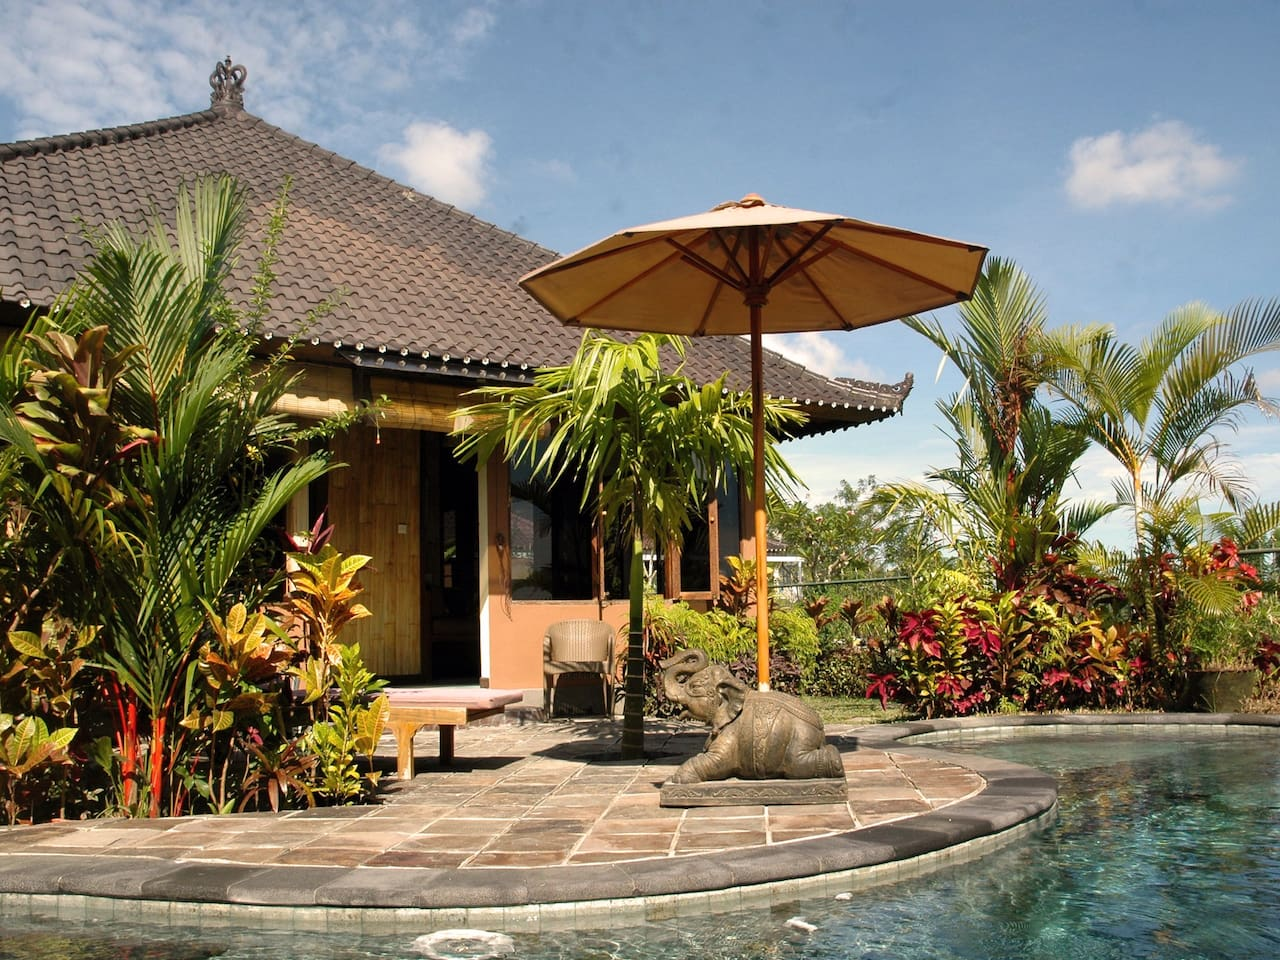 Bamboo Bungalow by the salt-water pool